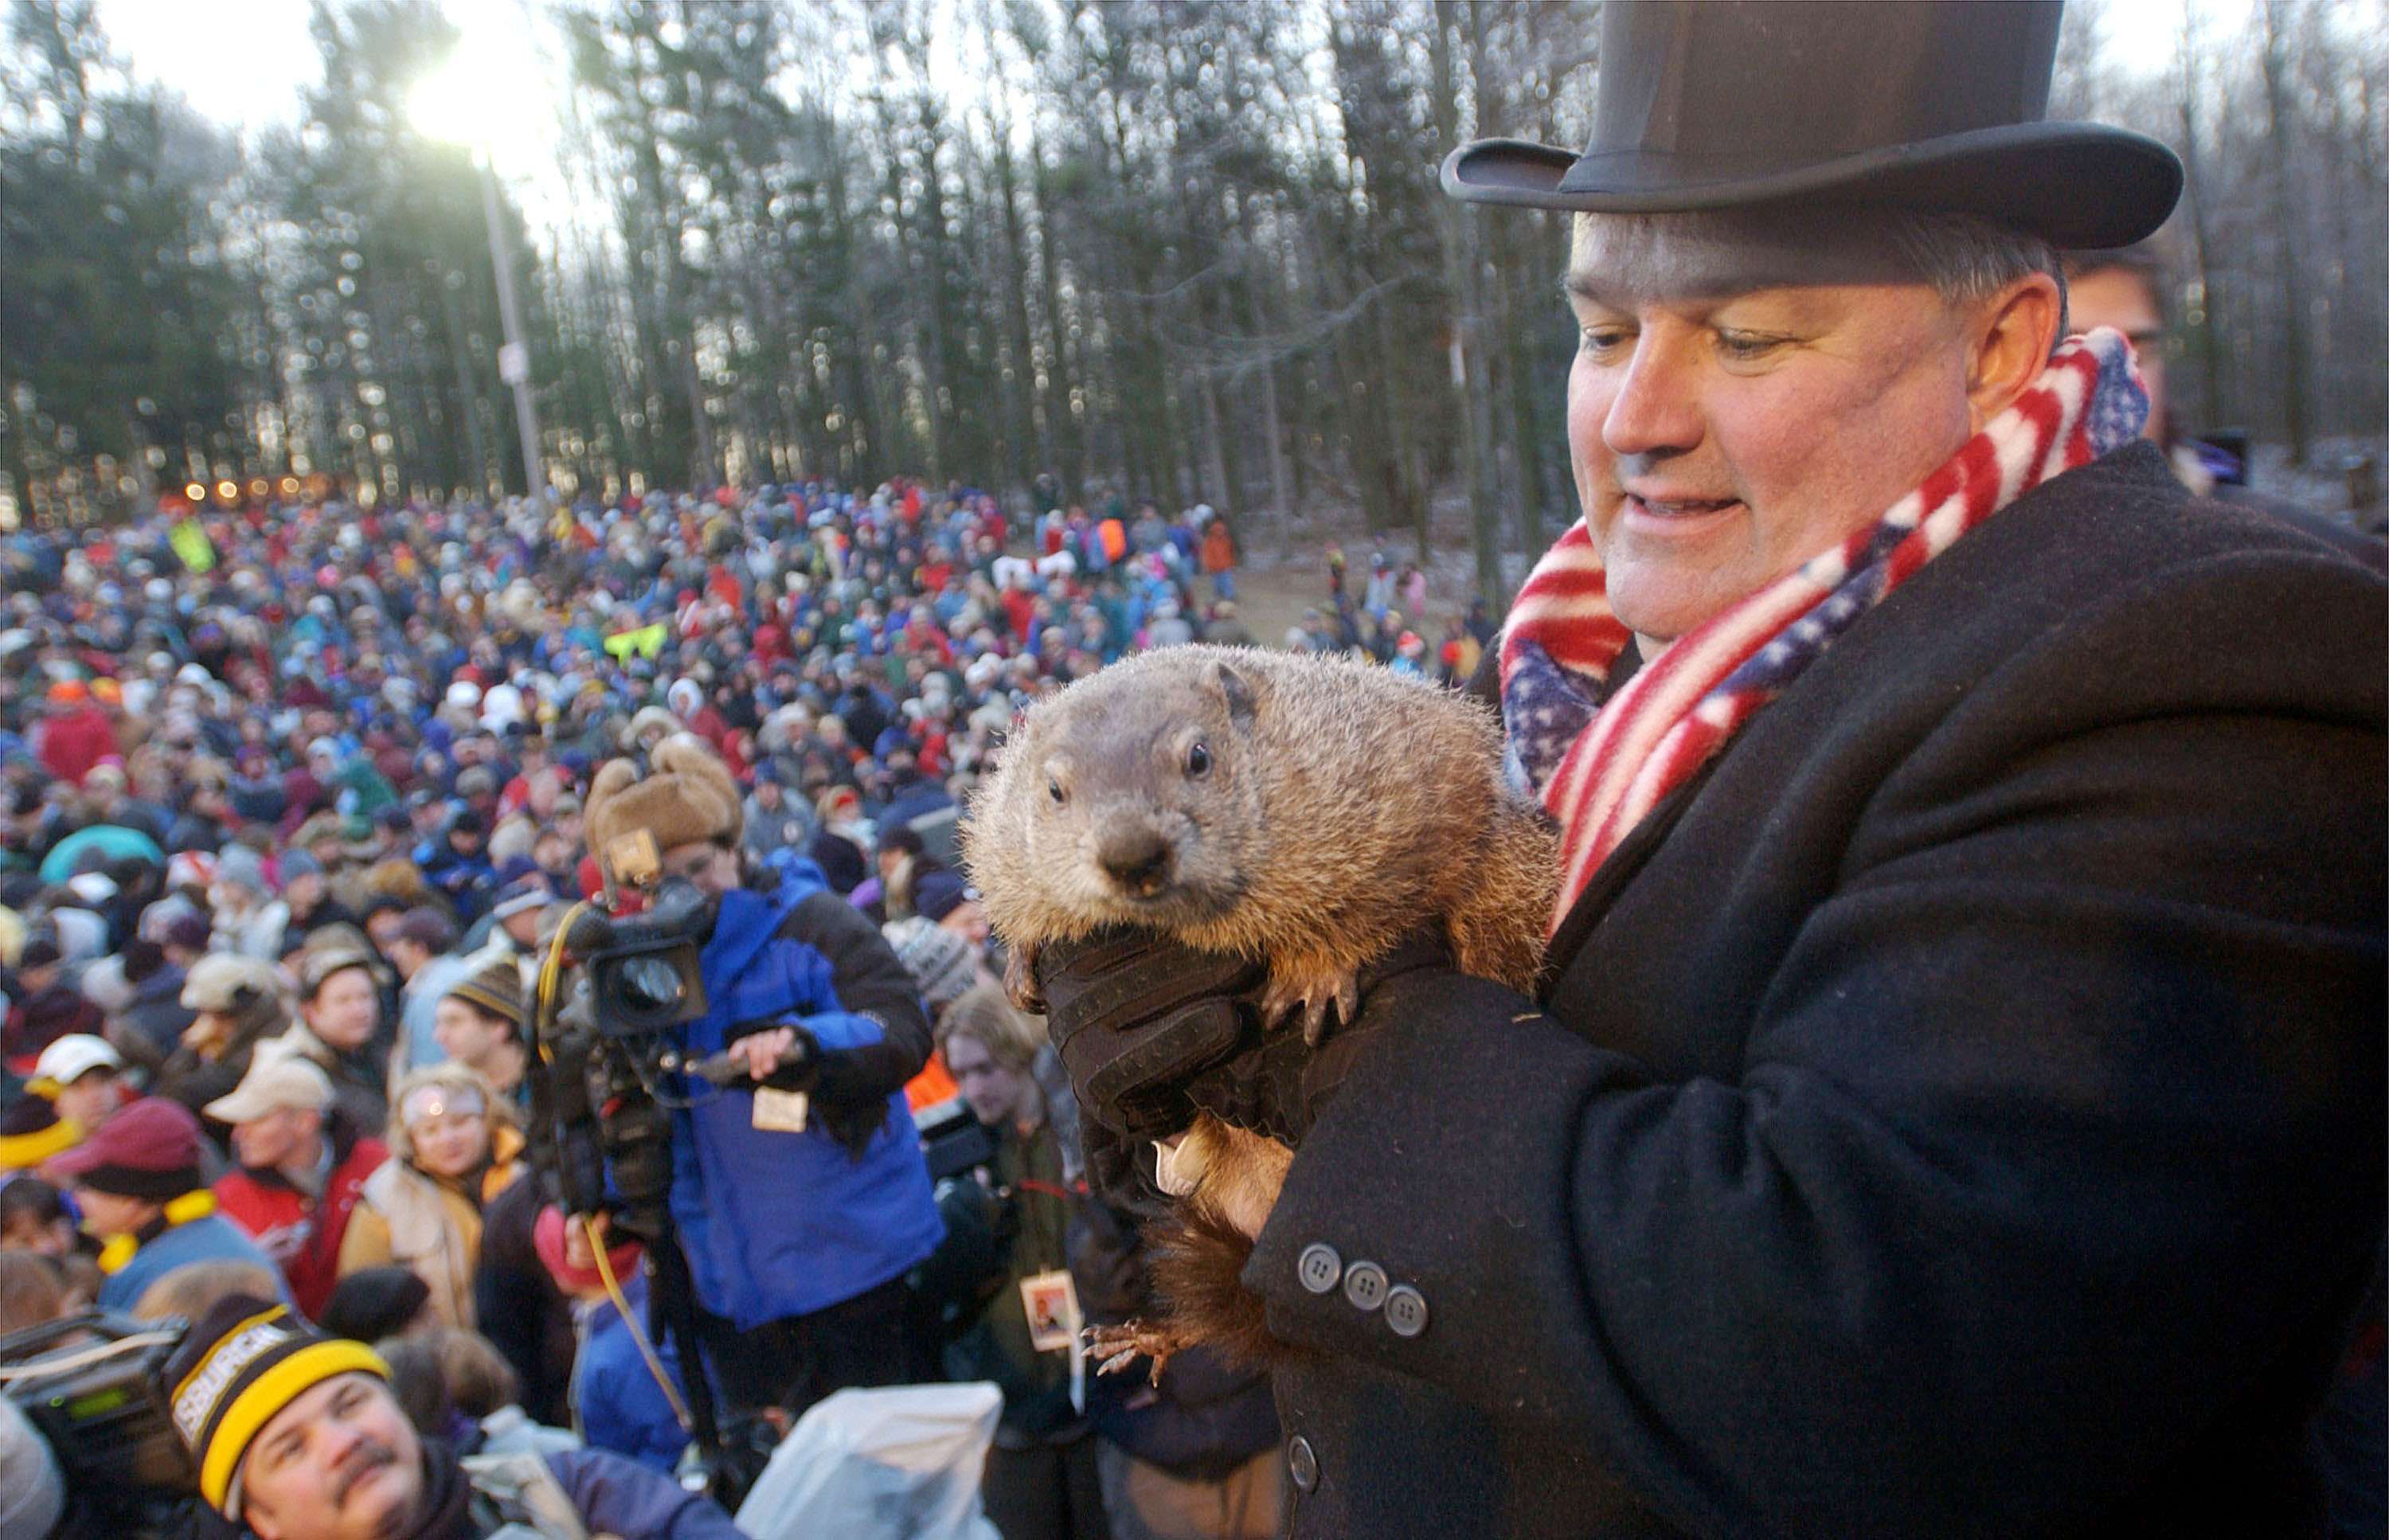 Groundhog Day: Punxsutawney Phil sees 6 more weeks of winter